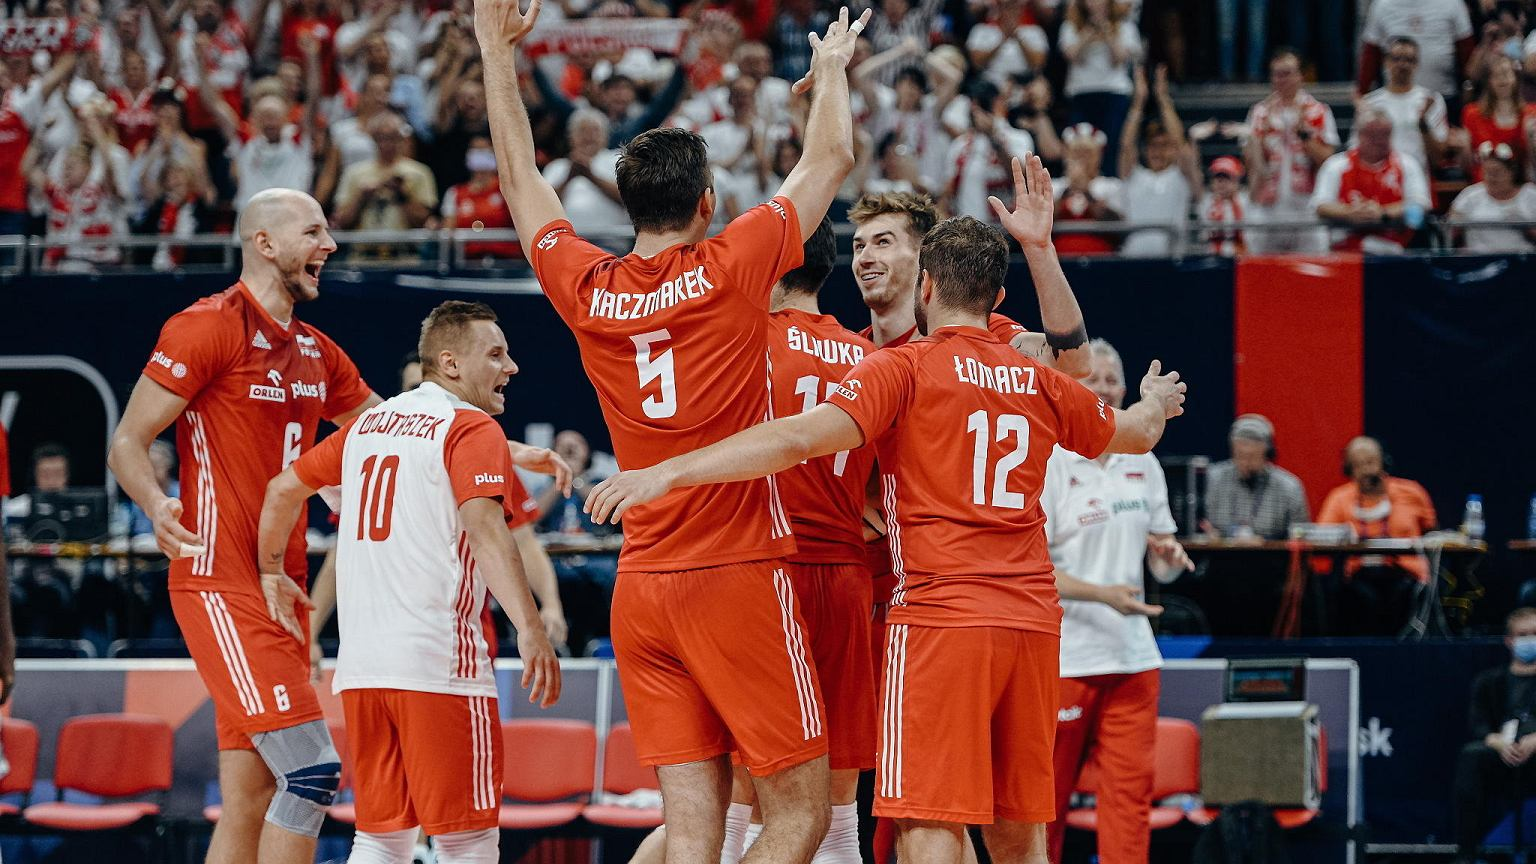 Poland won with Serbia 3:2 (25:21, 23:25, 20:25, 25:20, 16; 14) in the second match of Group A of the European Men's Volleyball Championship.  After the tiebreak, the Tauron Arena Kraków exploded with glee.